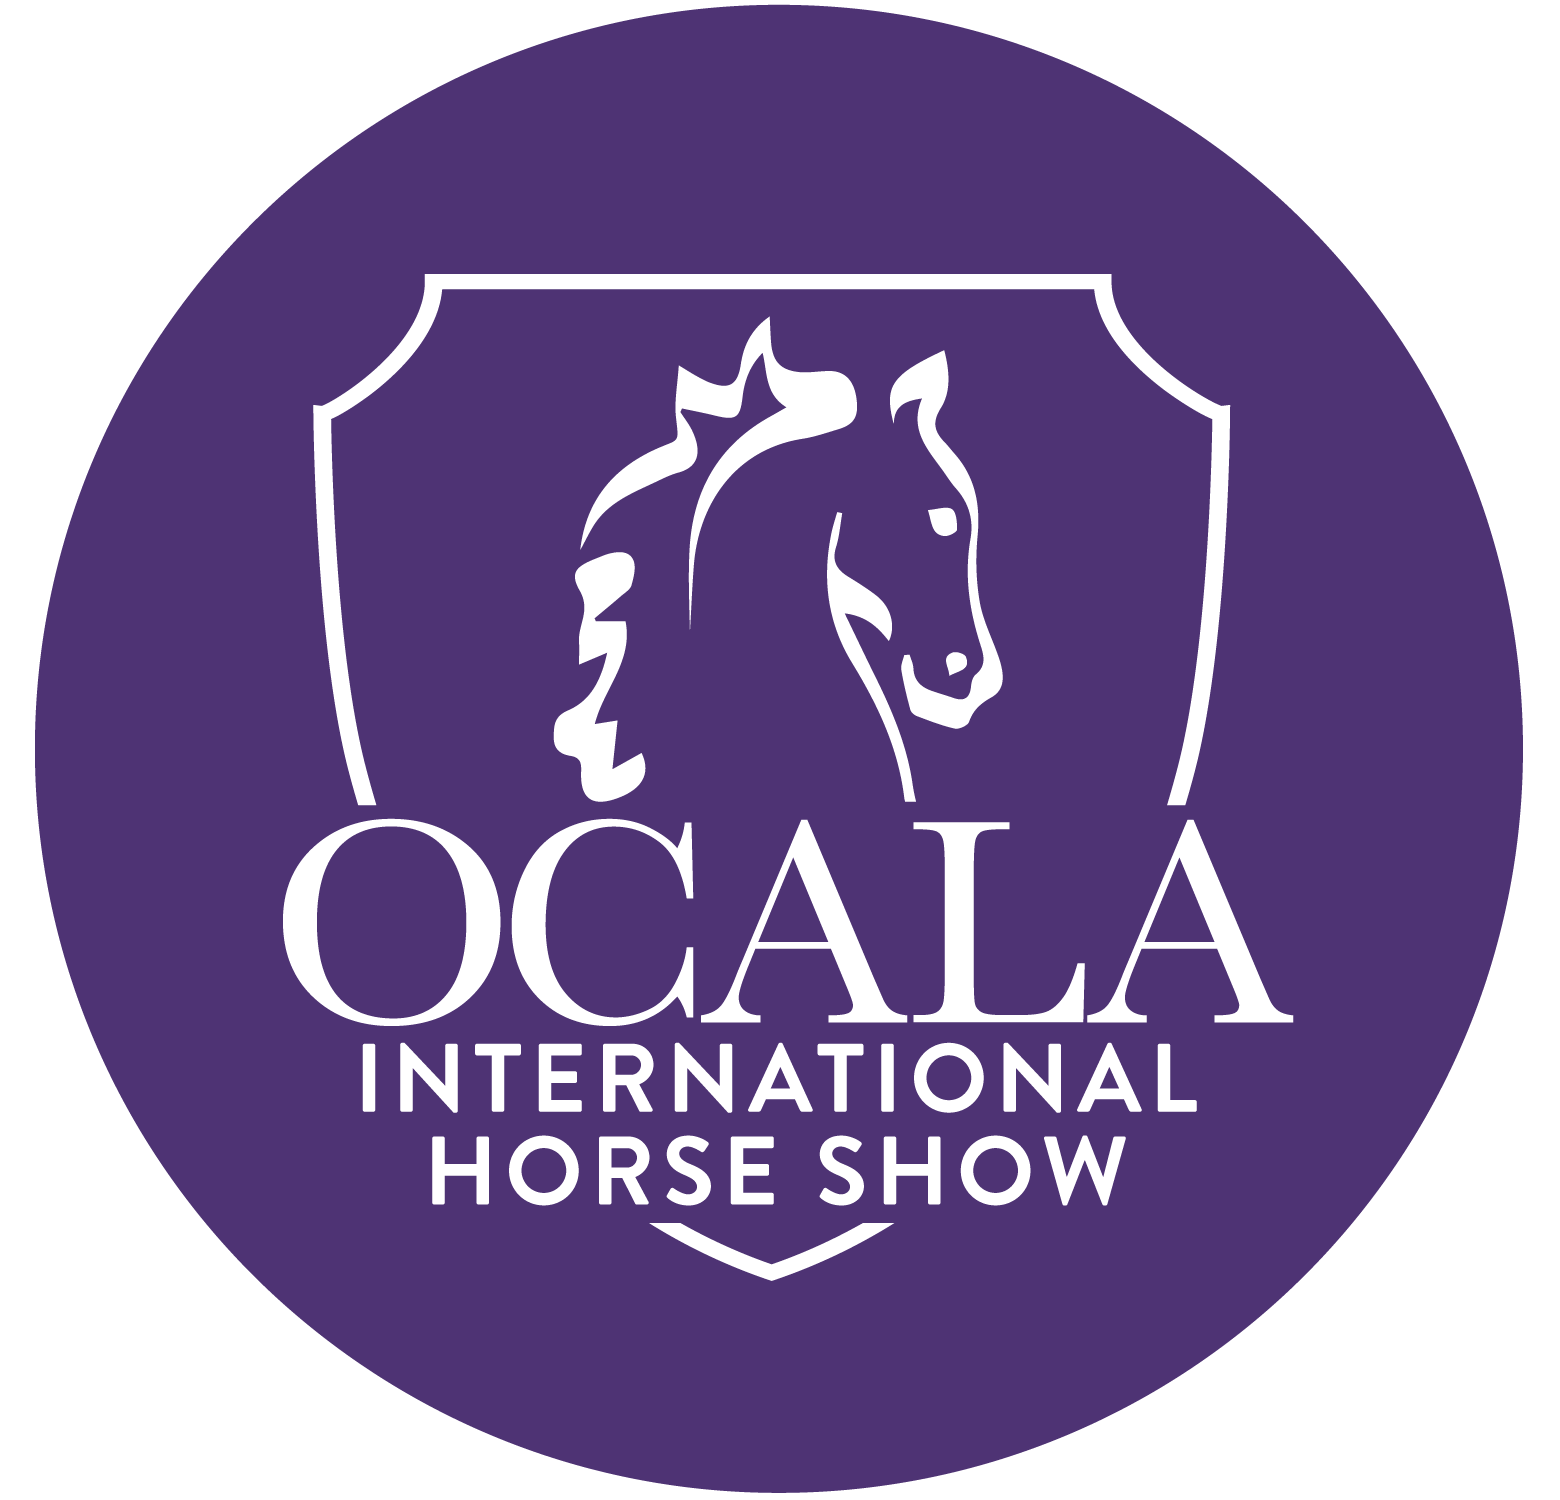 Ocala International Horse Show